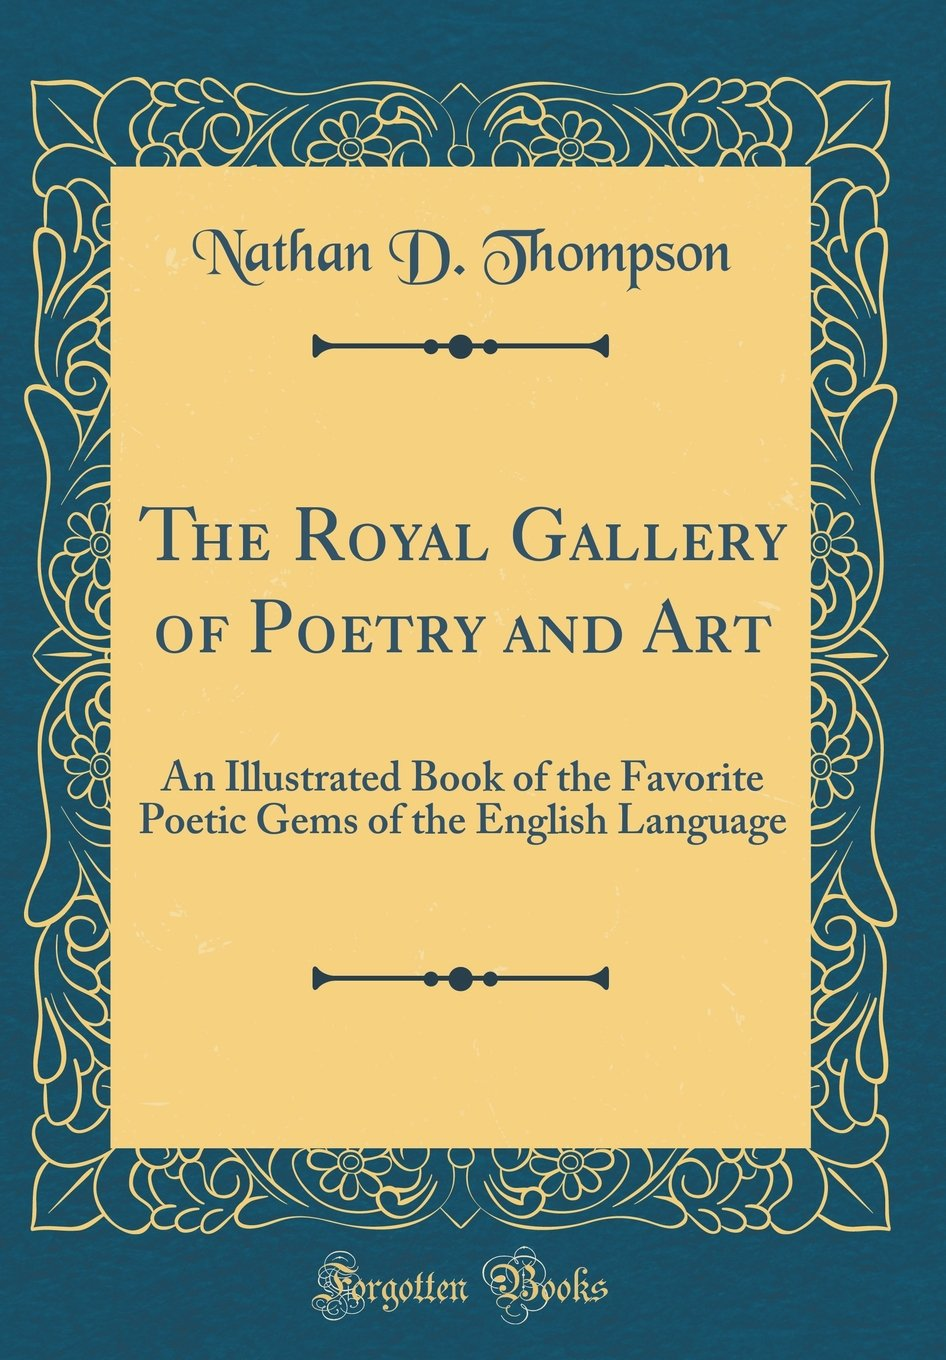 Download The Royal Gallery of Poetry and Art: An Illustrated Book of the Favorite Poetic Gems of the English Language (Classic Reprint) ebook